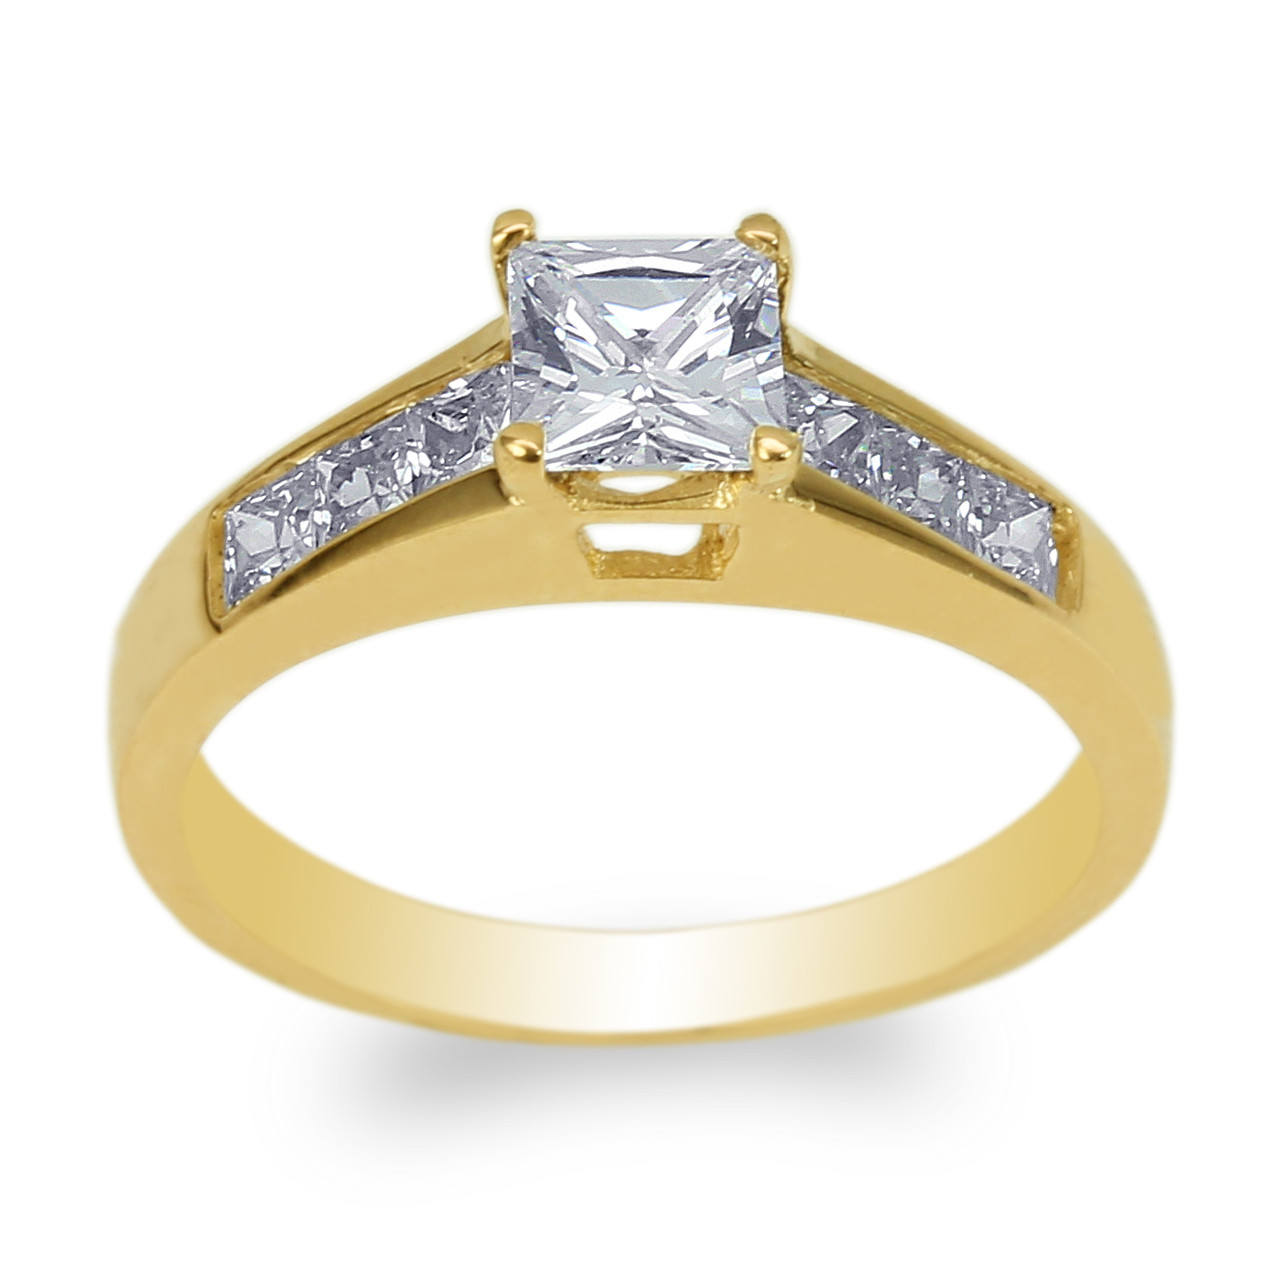 Womens Set 14K Yellow Gold Round CZ Wedding Pattern Solitaire Ring Size 4-10